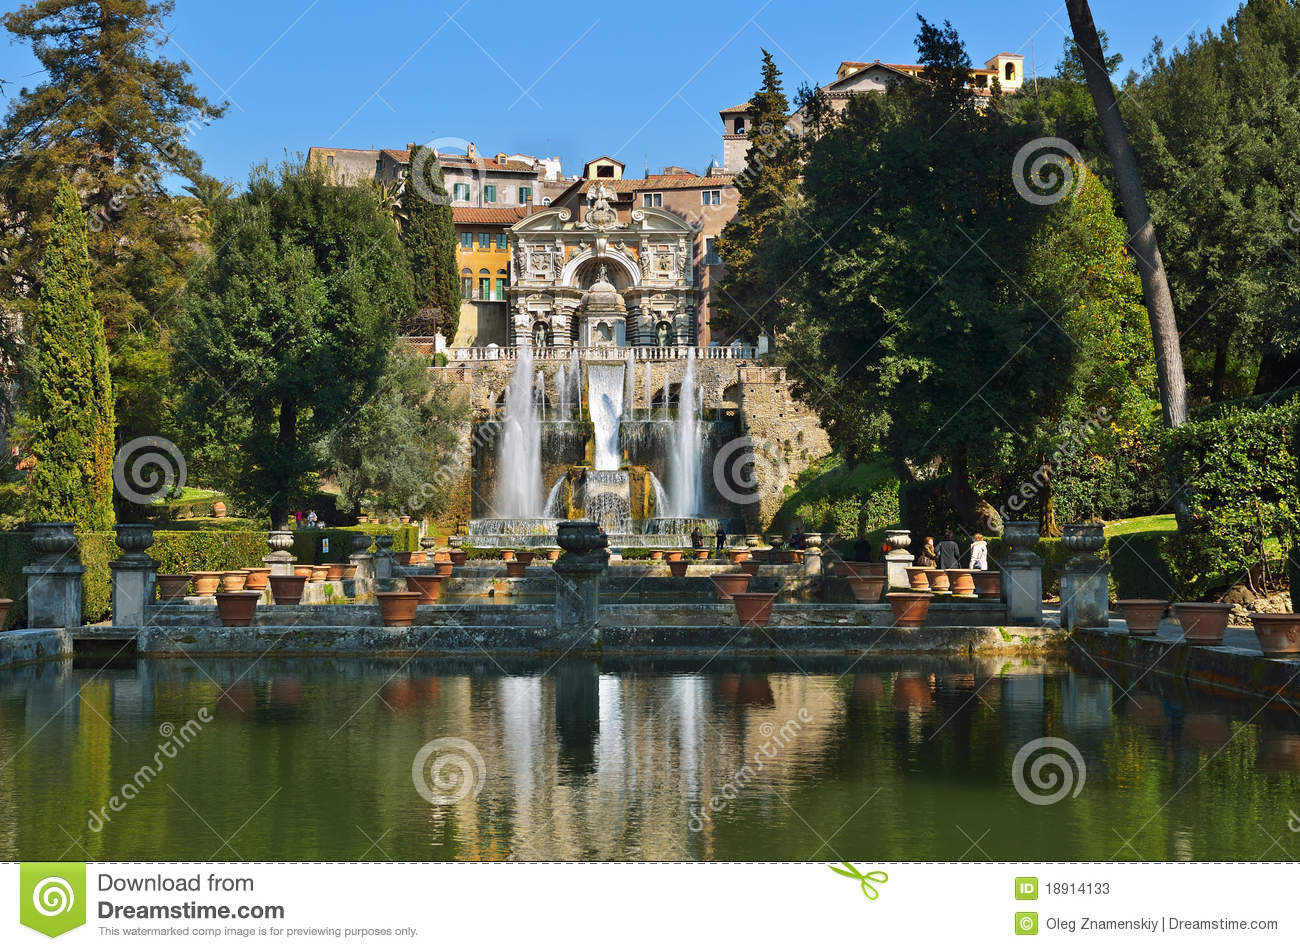 Tivoli italia garden pool and fountain stock image for Camping le jardin de tivoli